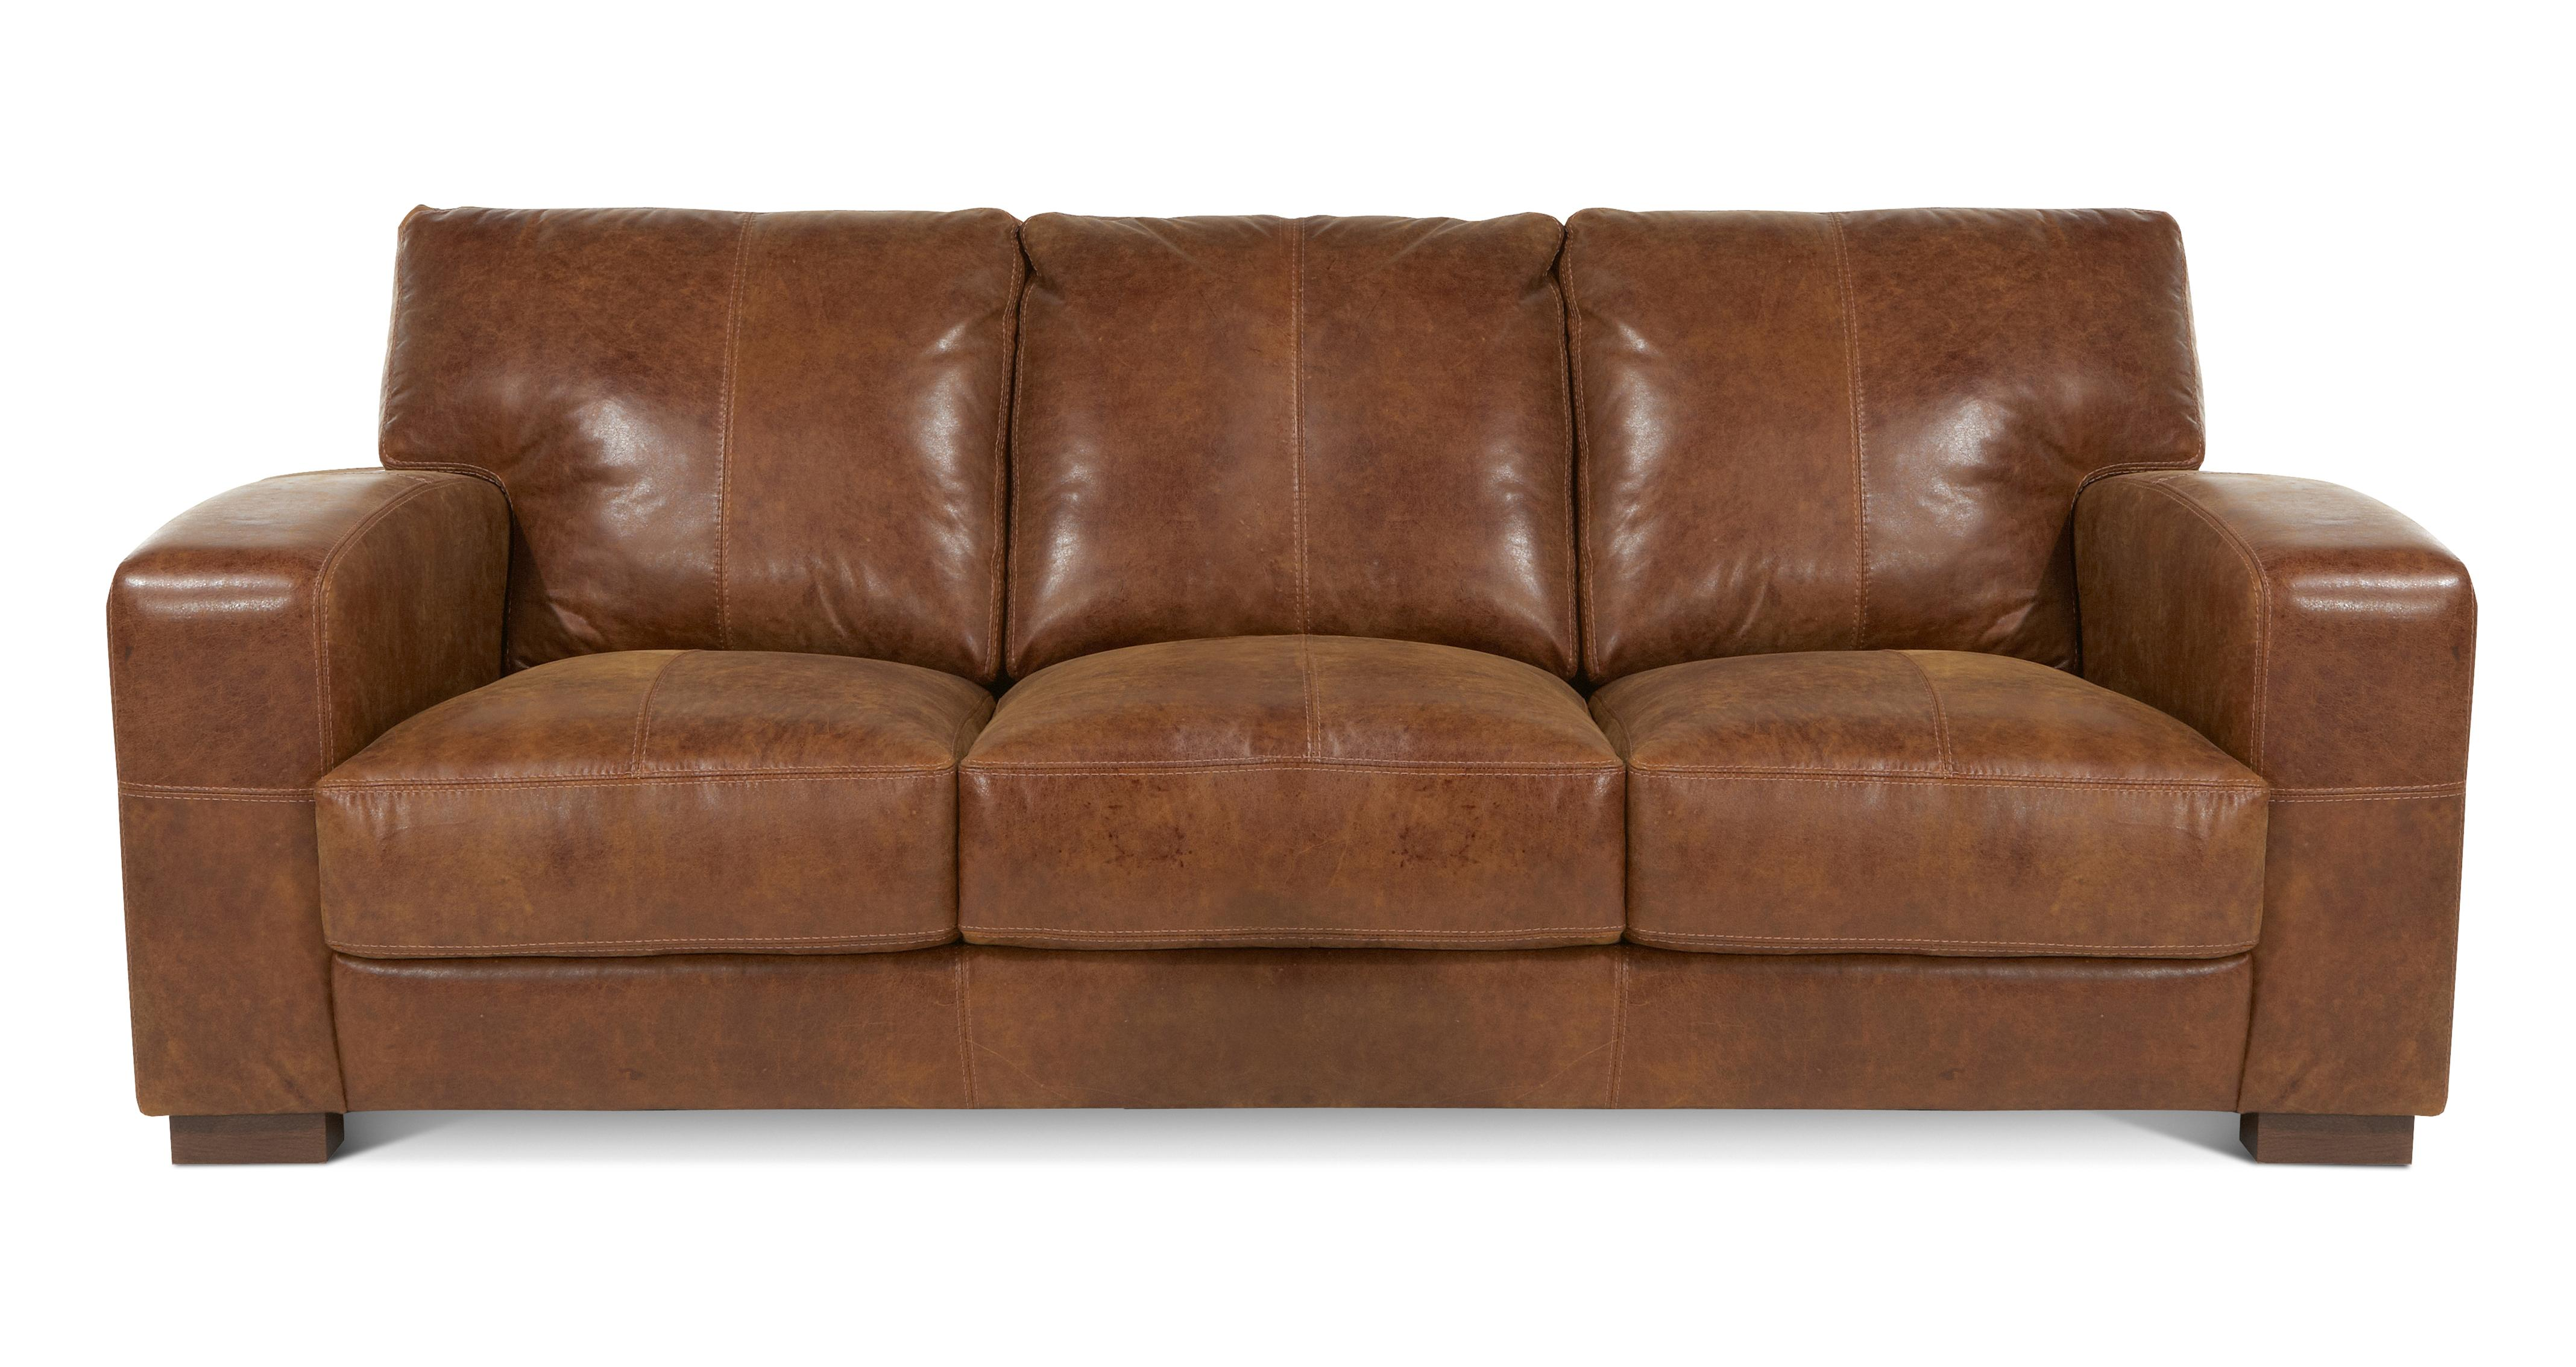 leather sofa brown dfs www ebay com sectional emperor couch italian ranch natural